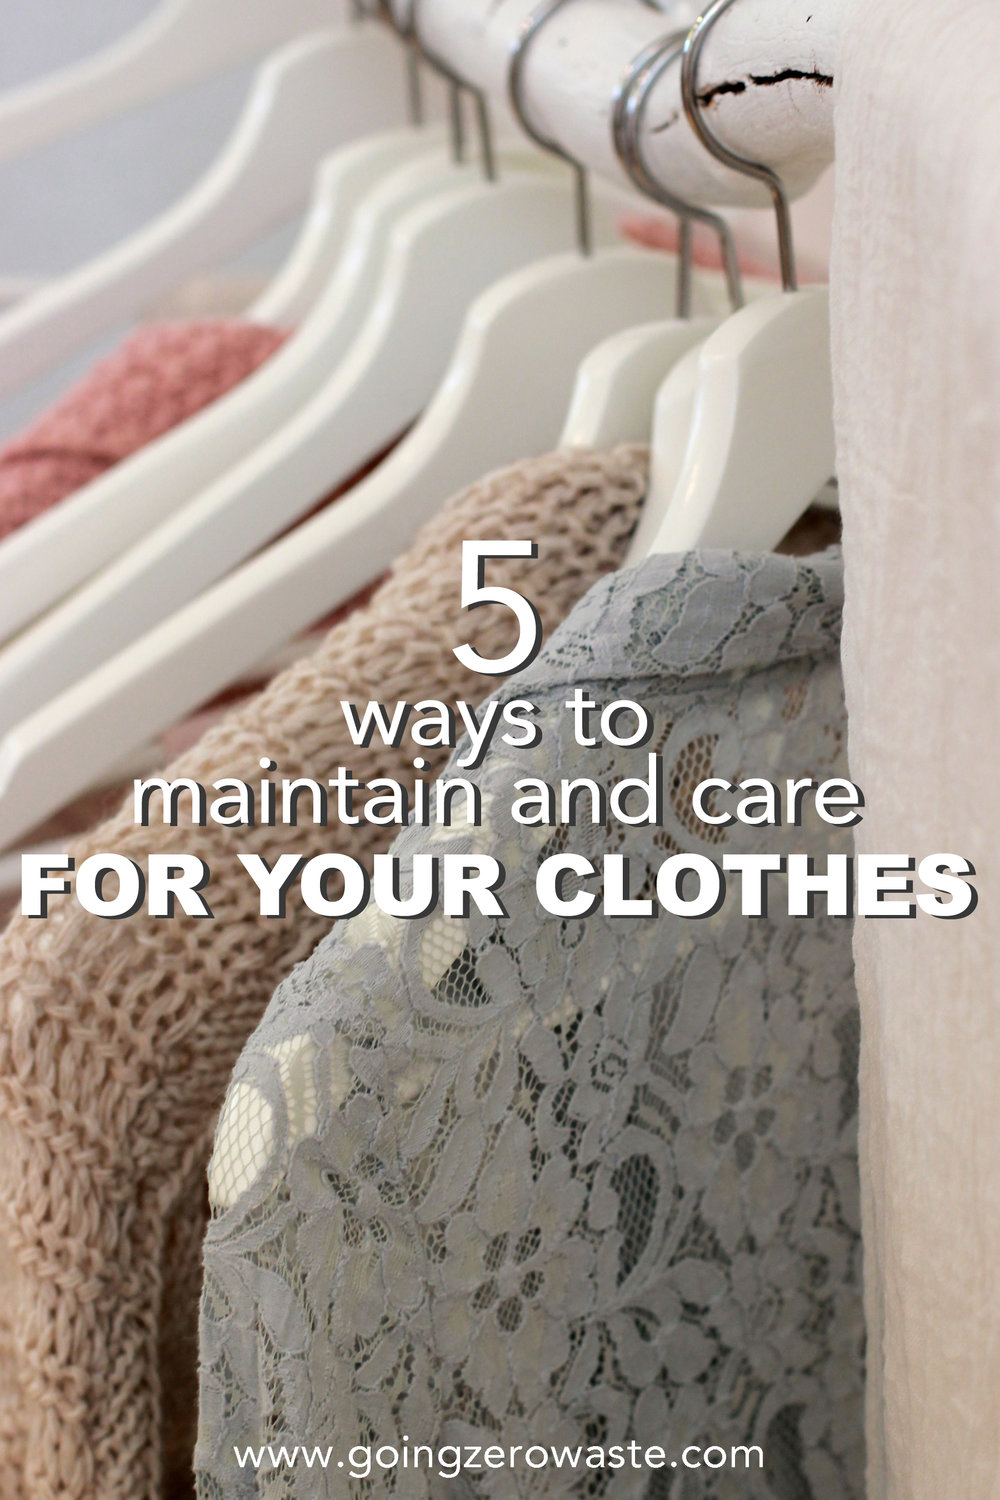 5 ways to maintain and care for your clothes from www.goingzerowaste.com